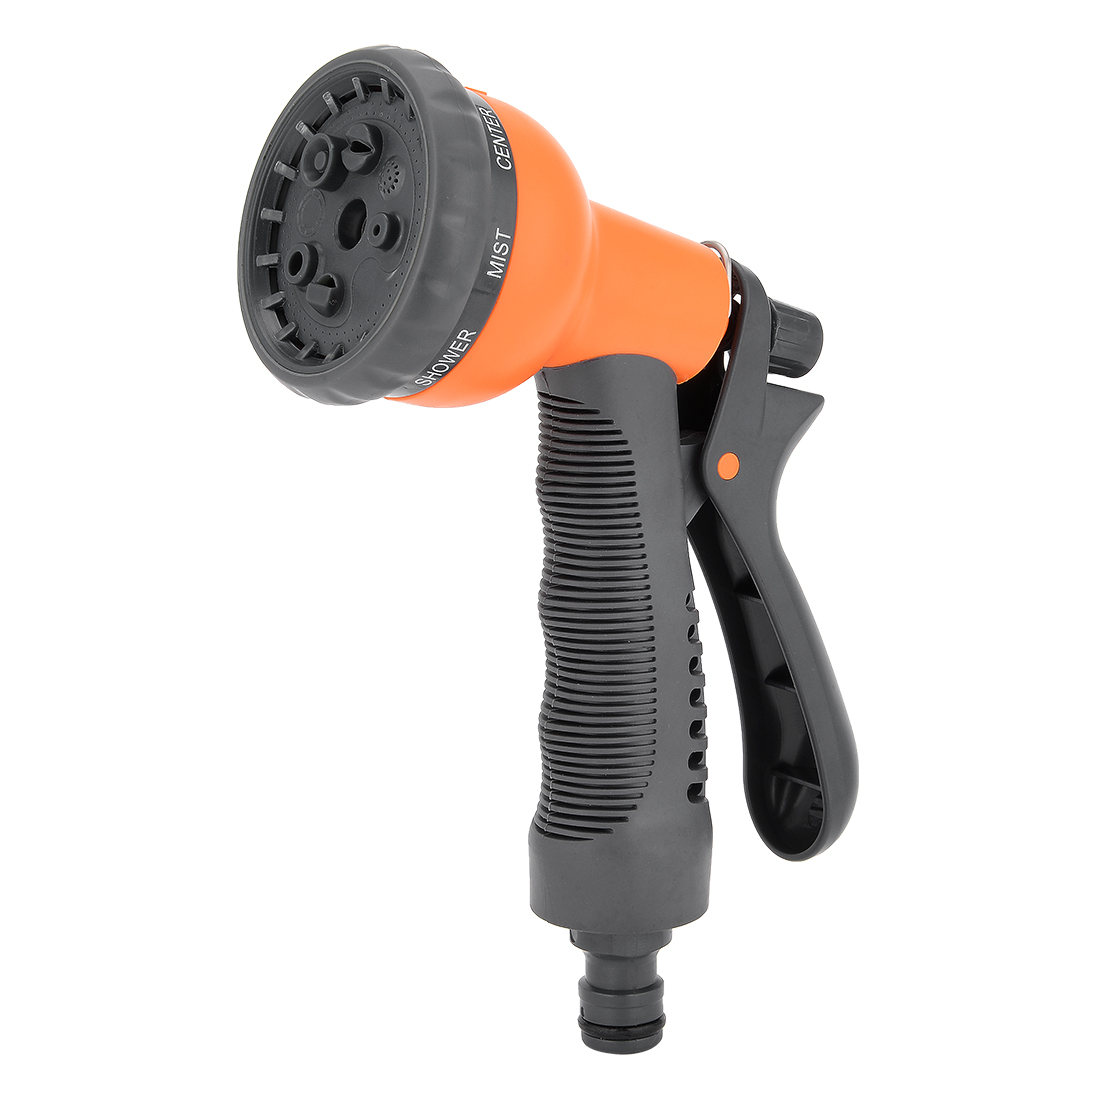 Unique BargainsGarden Hose ABS Spray Nozzle 8 Adjustable Watering Patterns